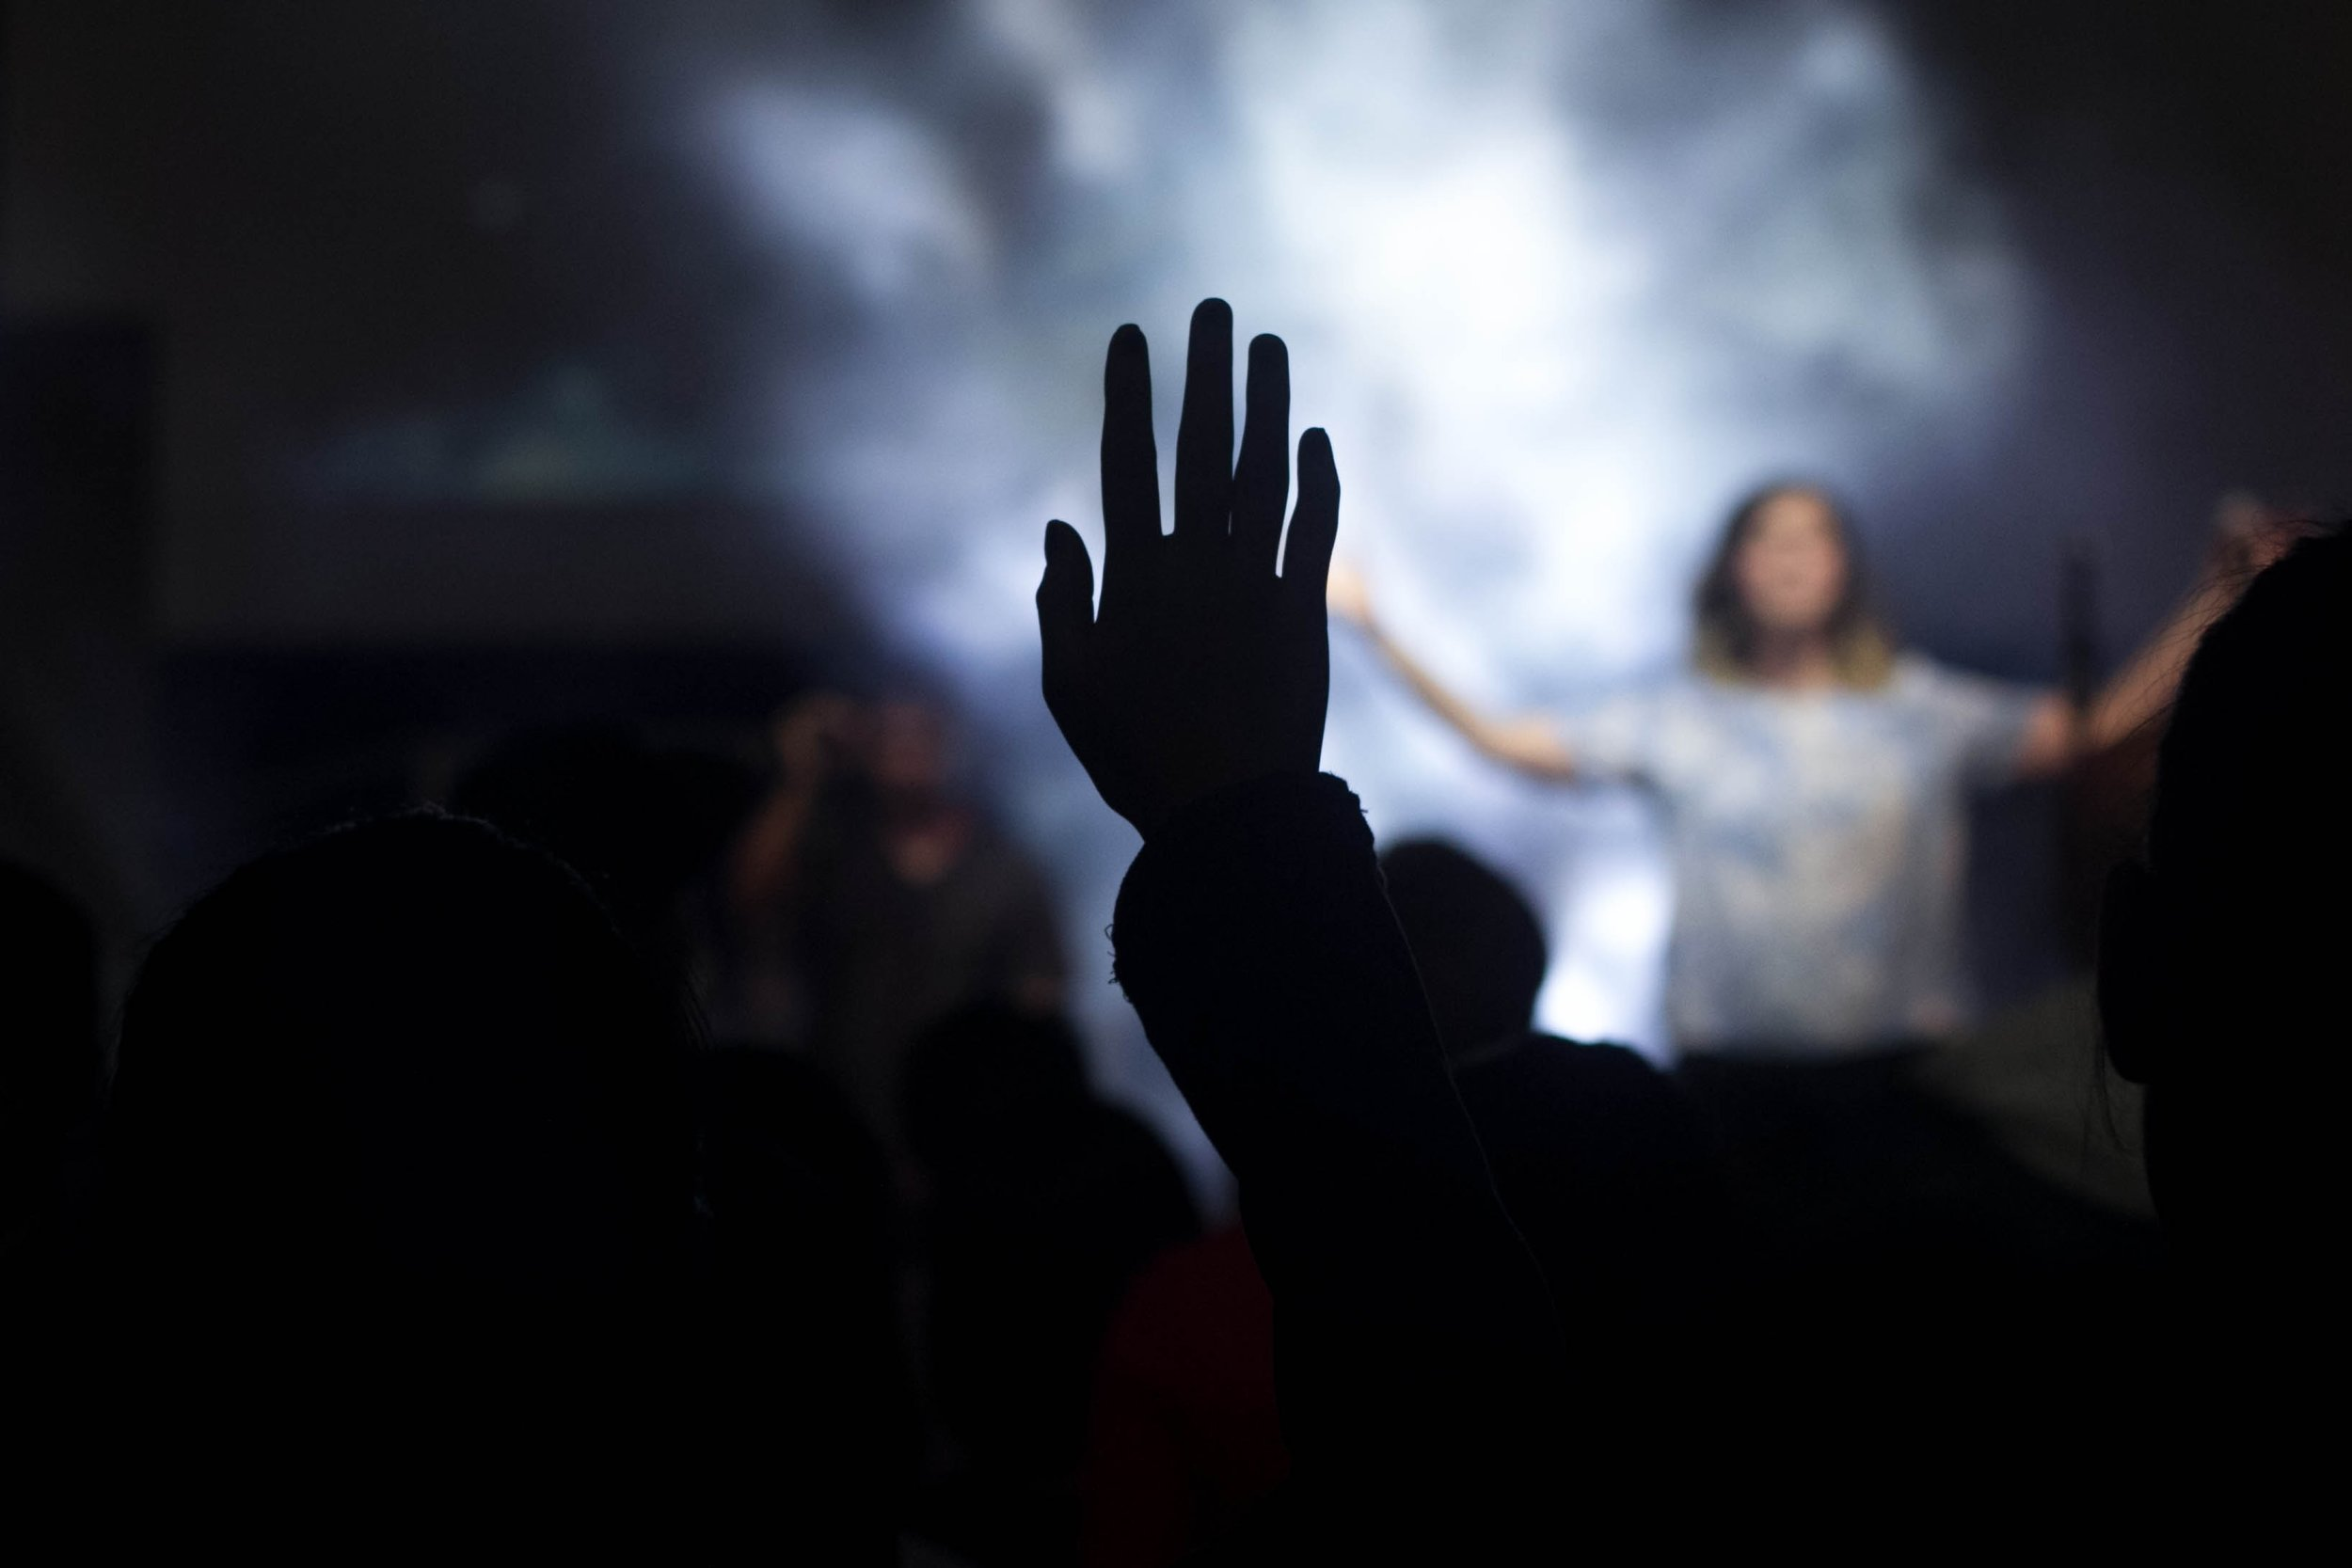 Raised Hands in Contemporary Service